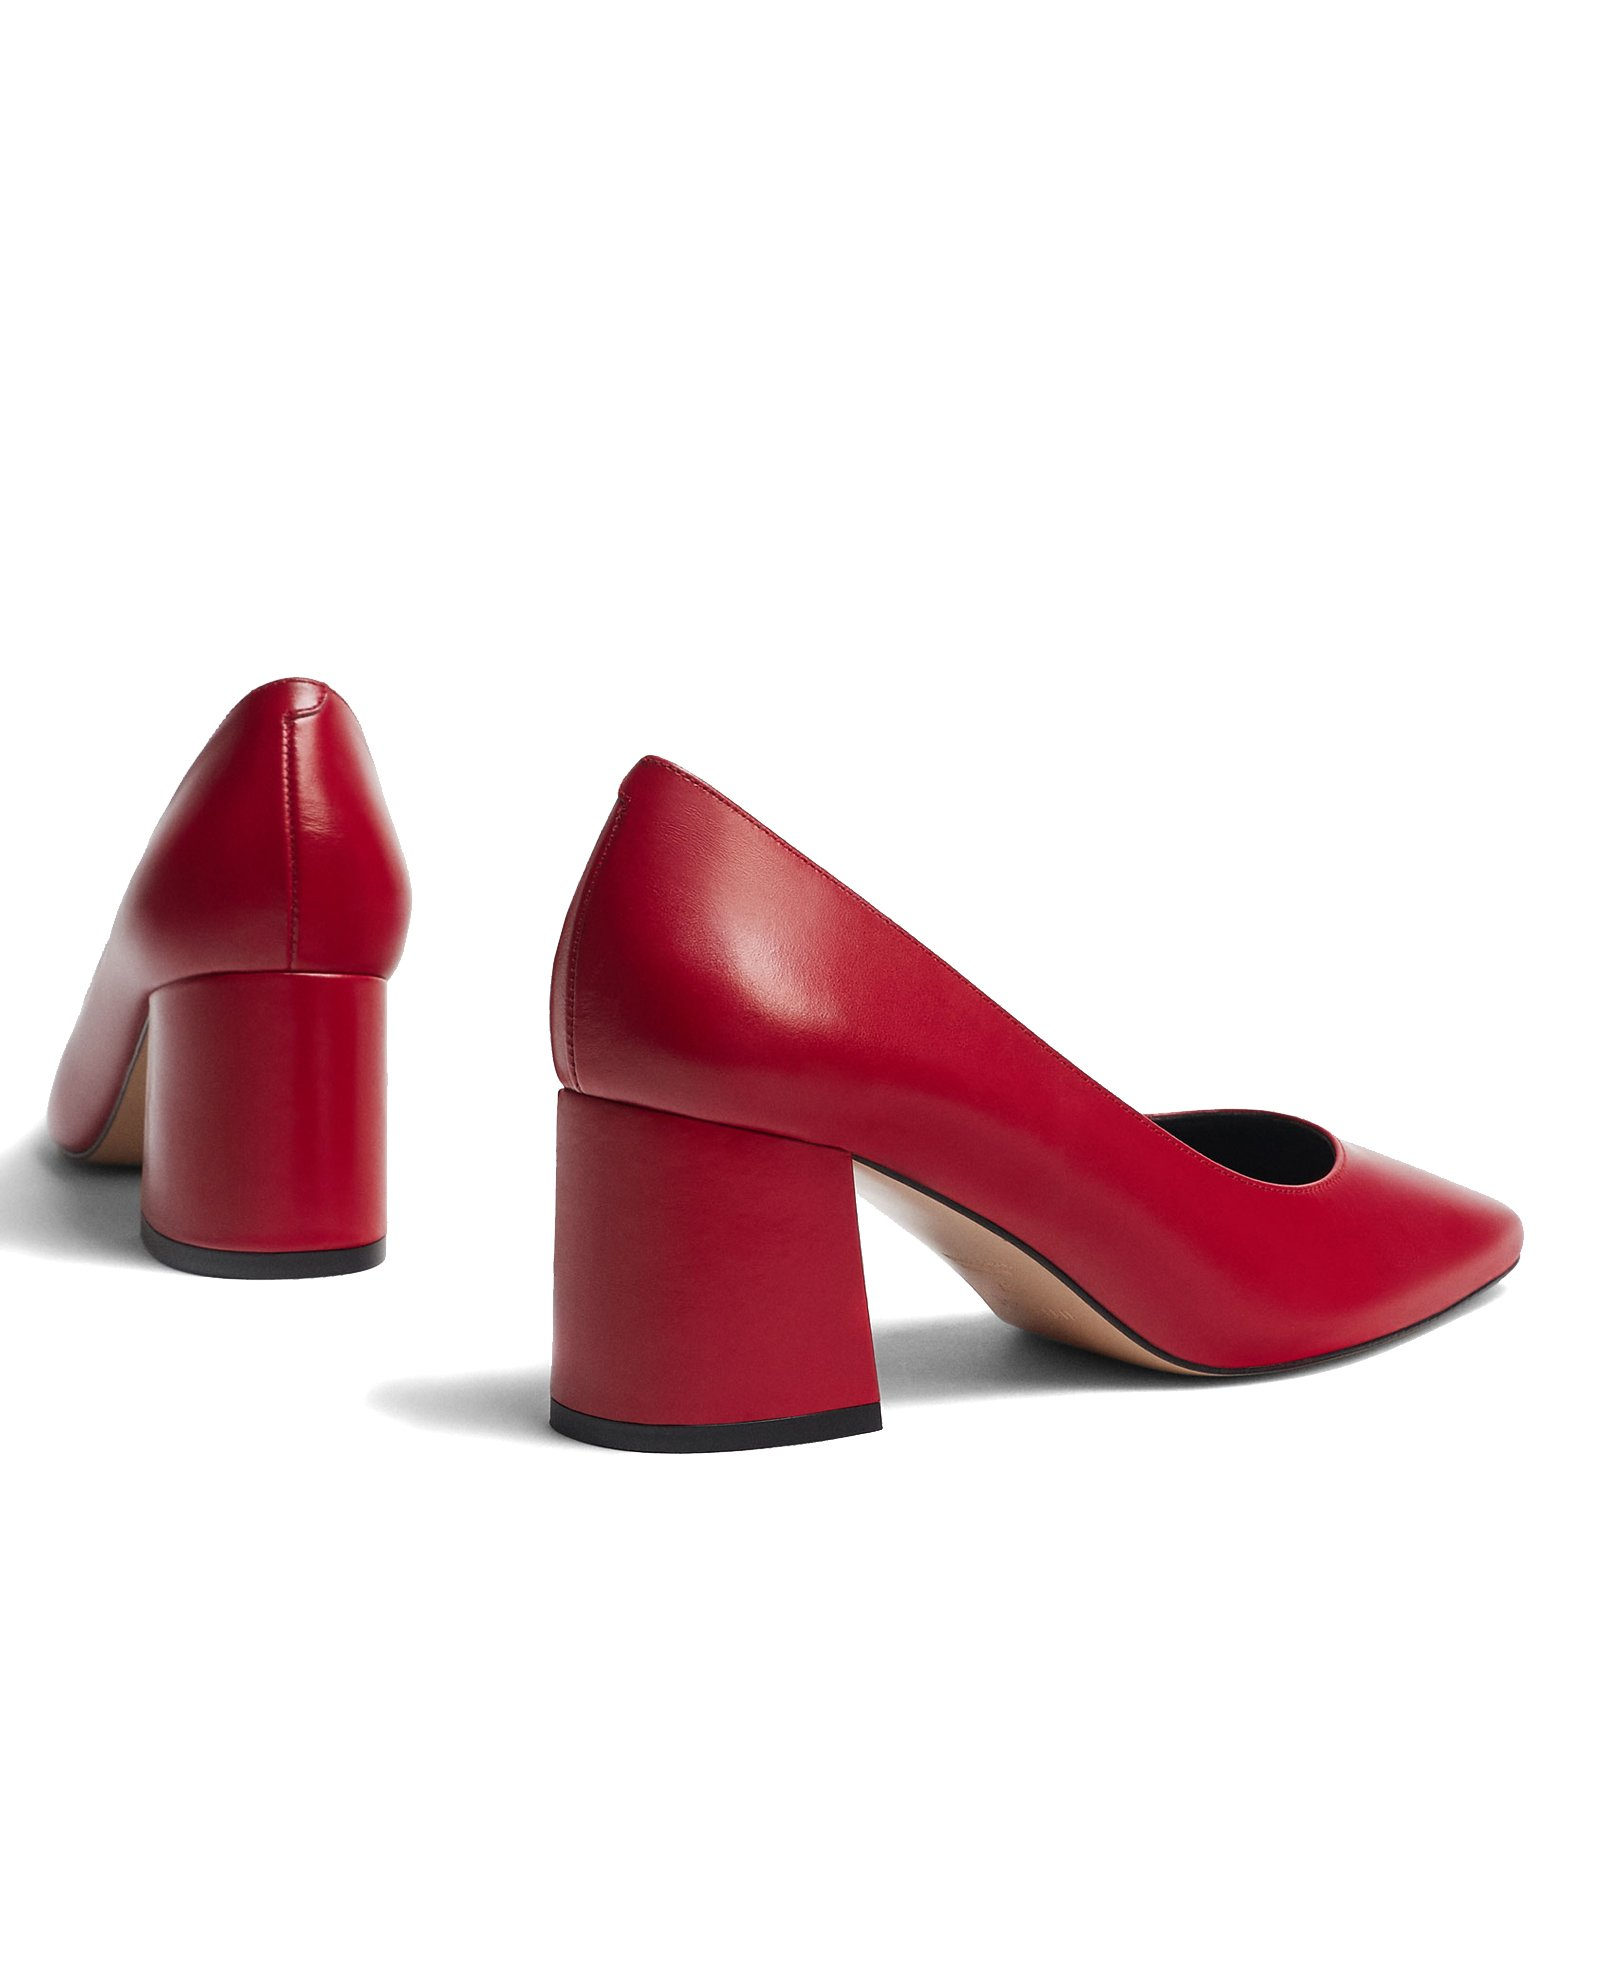 Uterque Women Red leather love high heel court shoes 4143/351 (40 EU | 9 US | 7 UK) by Uterque (Image #3)